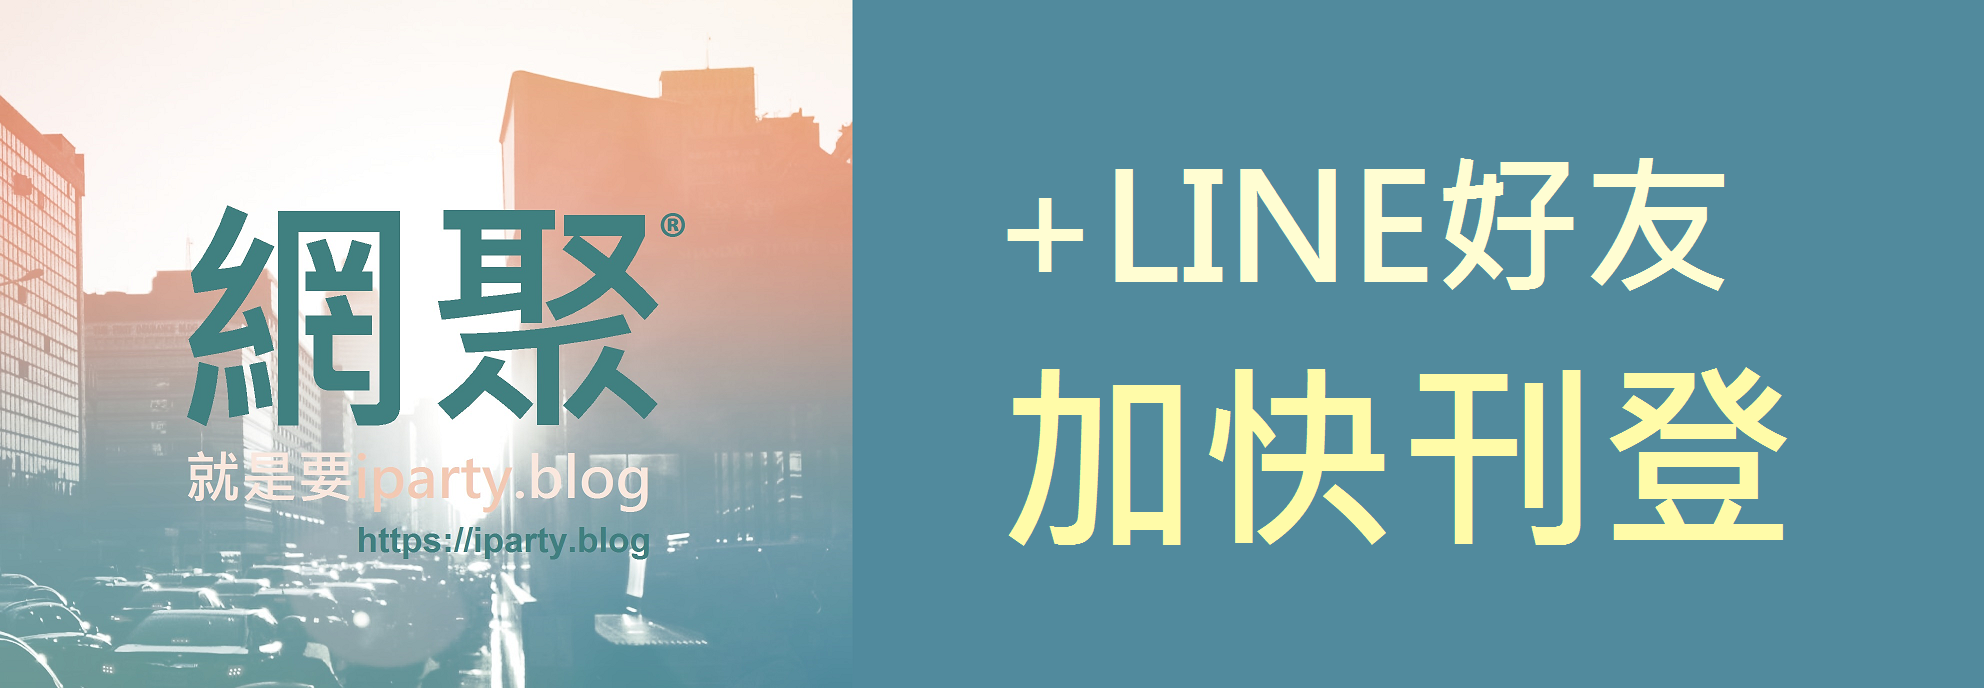 網聚® iparty.blog +LINE好友 - 加快委託刊登